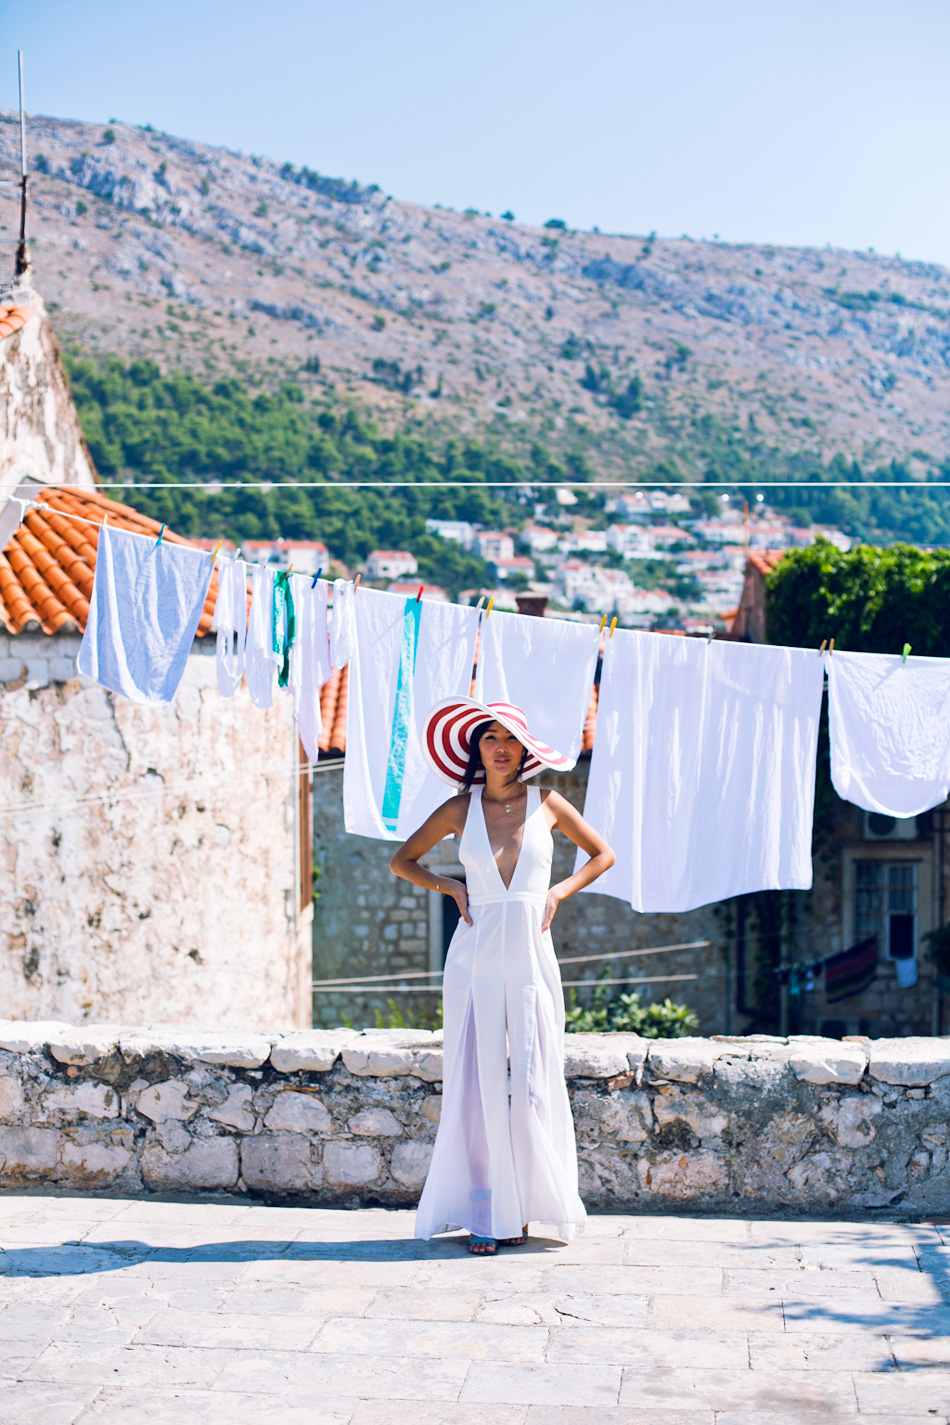 blogger-dubrovnik-garry-papper-girl-go-dubrovnik (32)